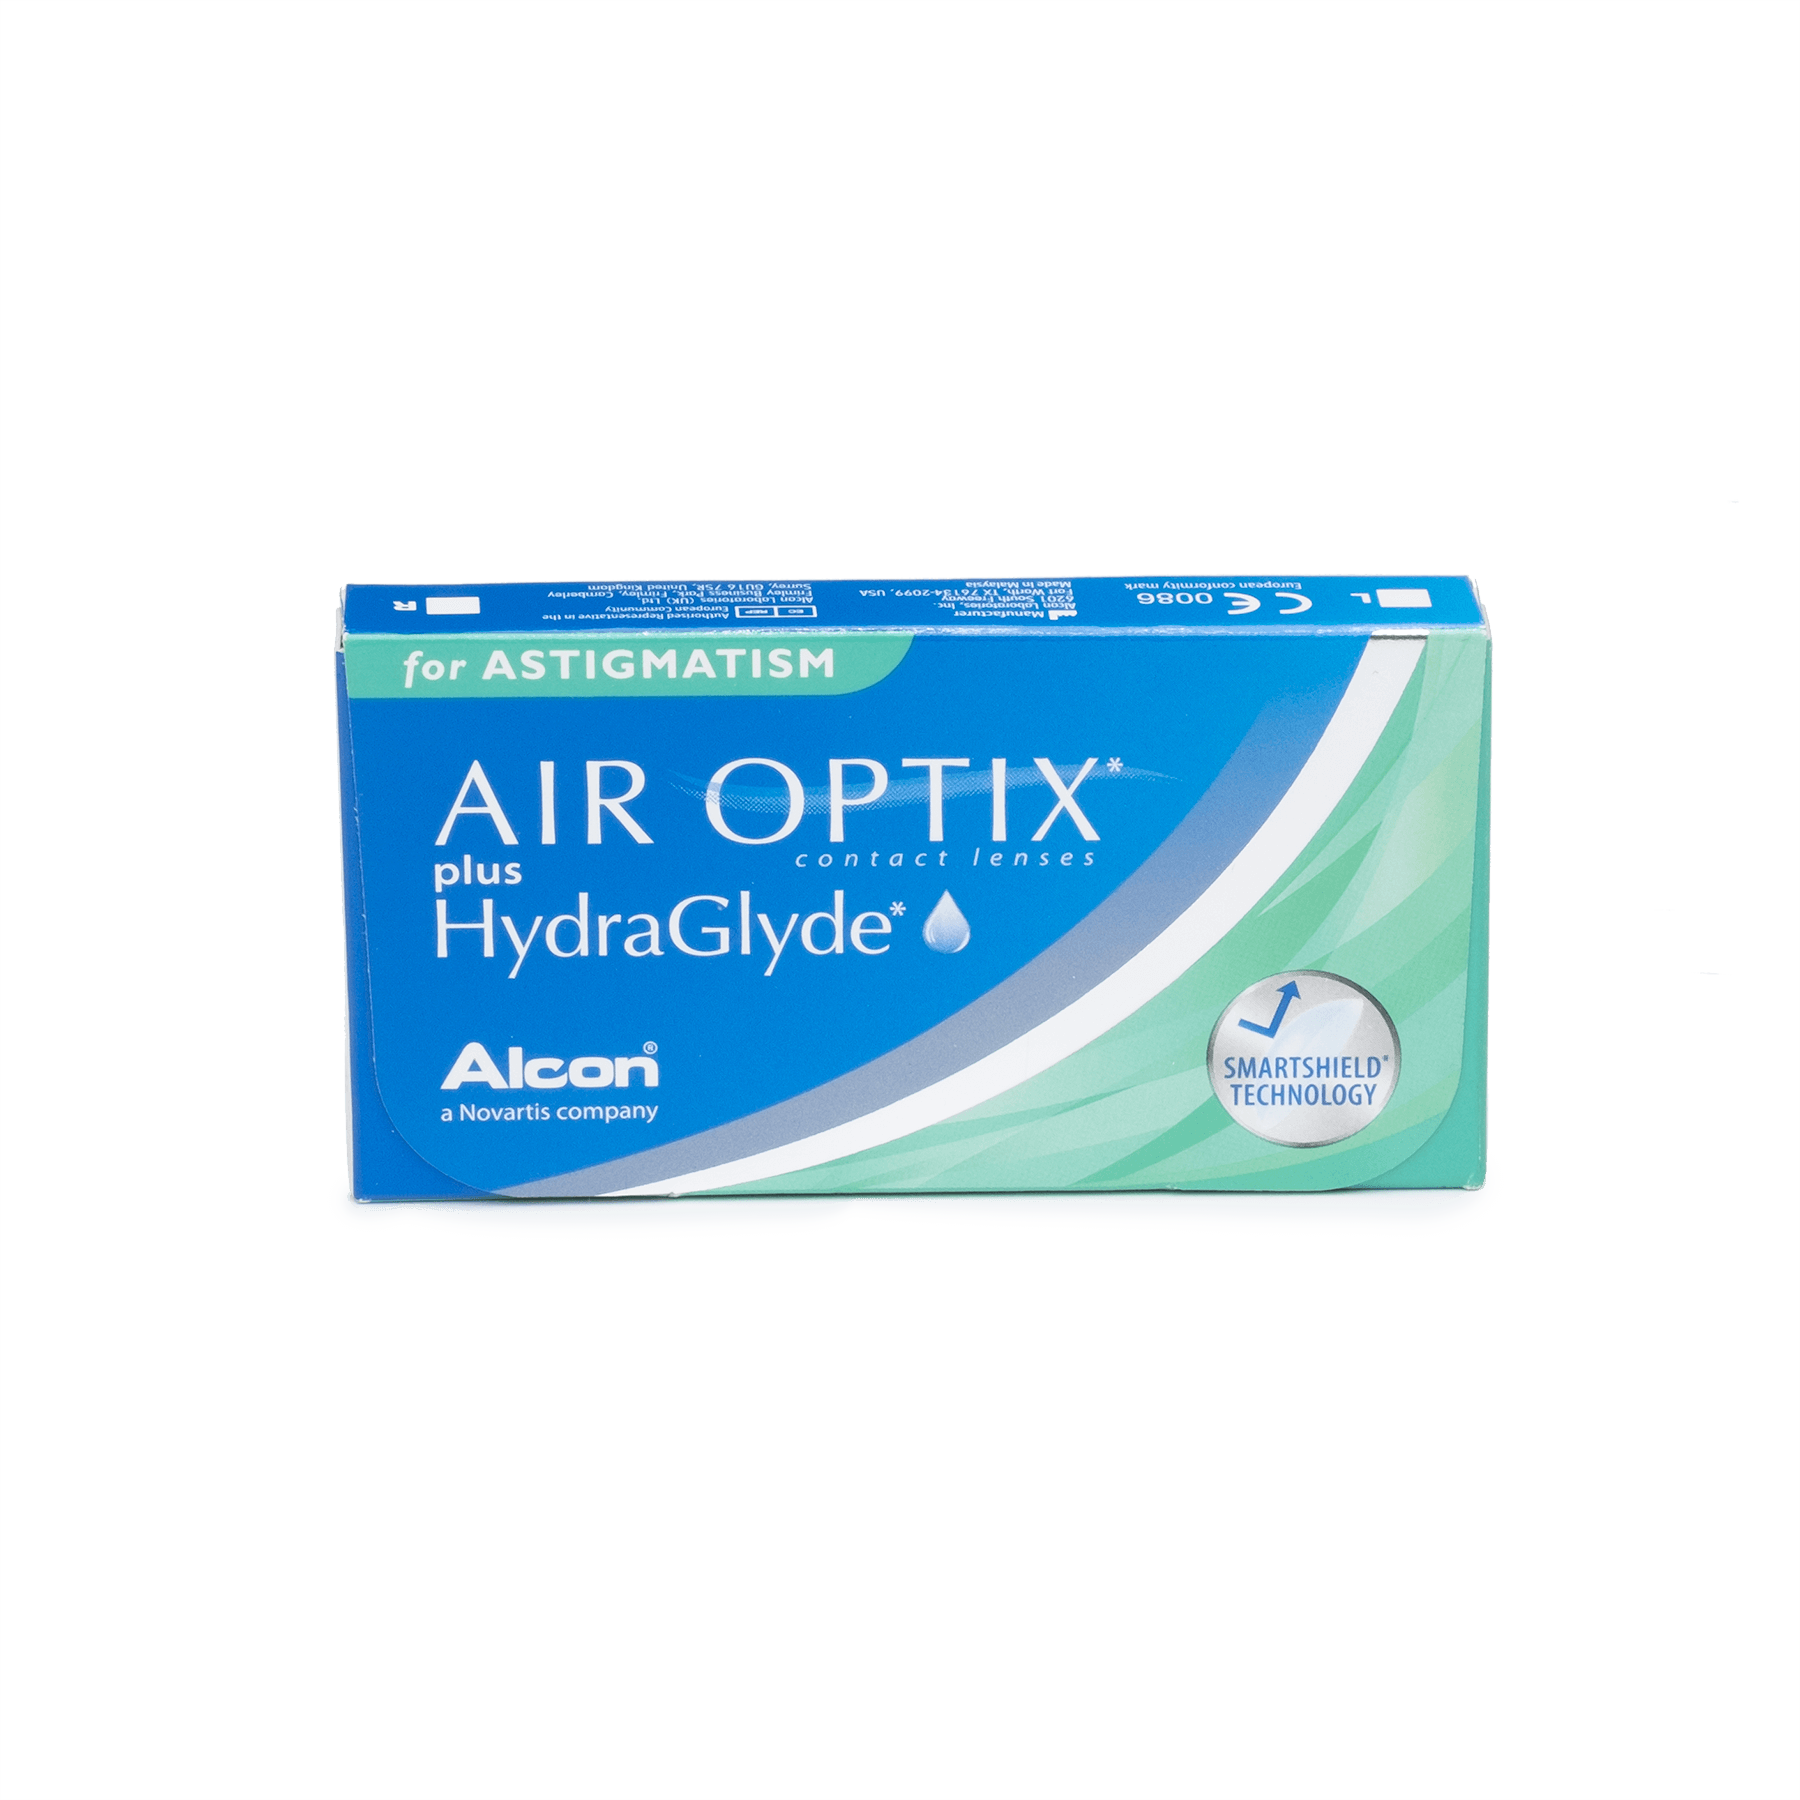 Air Optix plus Hydraglyde for Astigmatism 6pk*